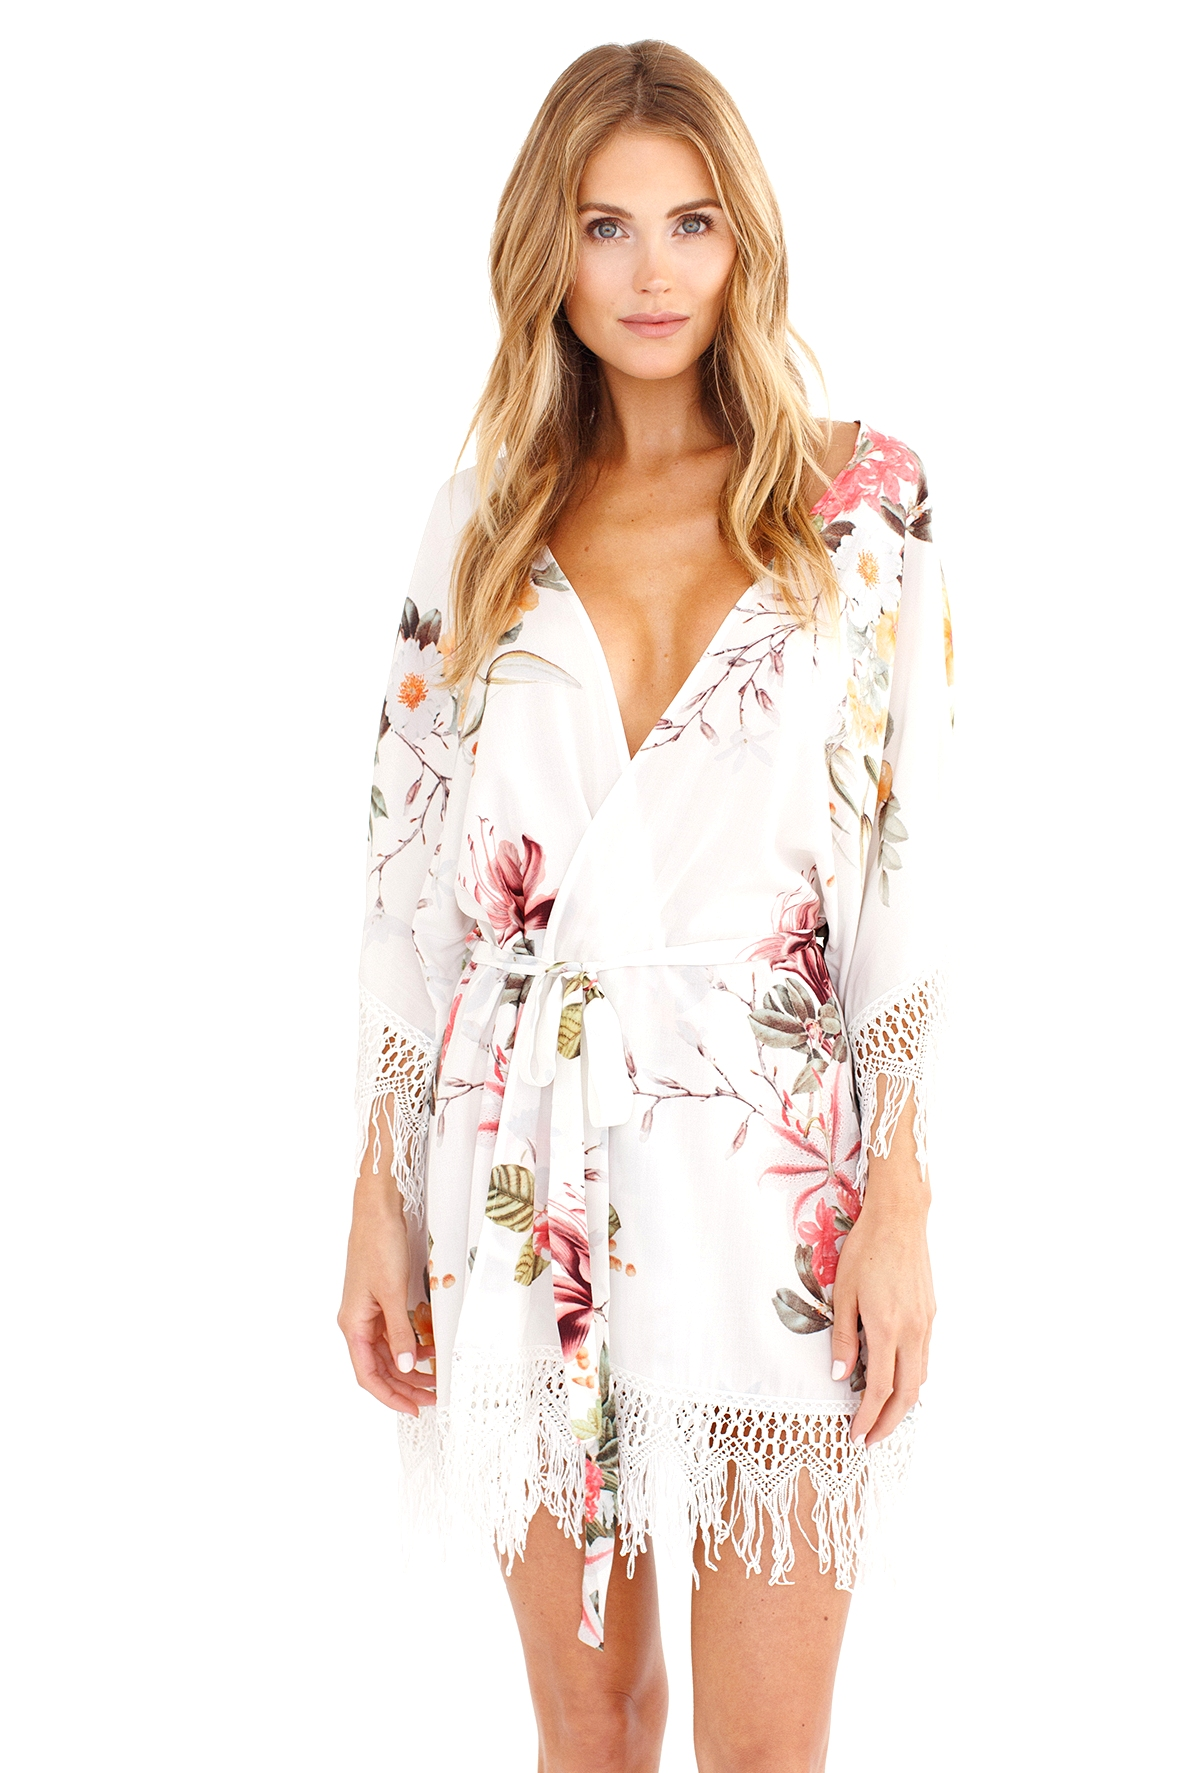 floral robe for bridesmaids and bride, fringed robe, white robe